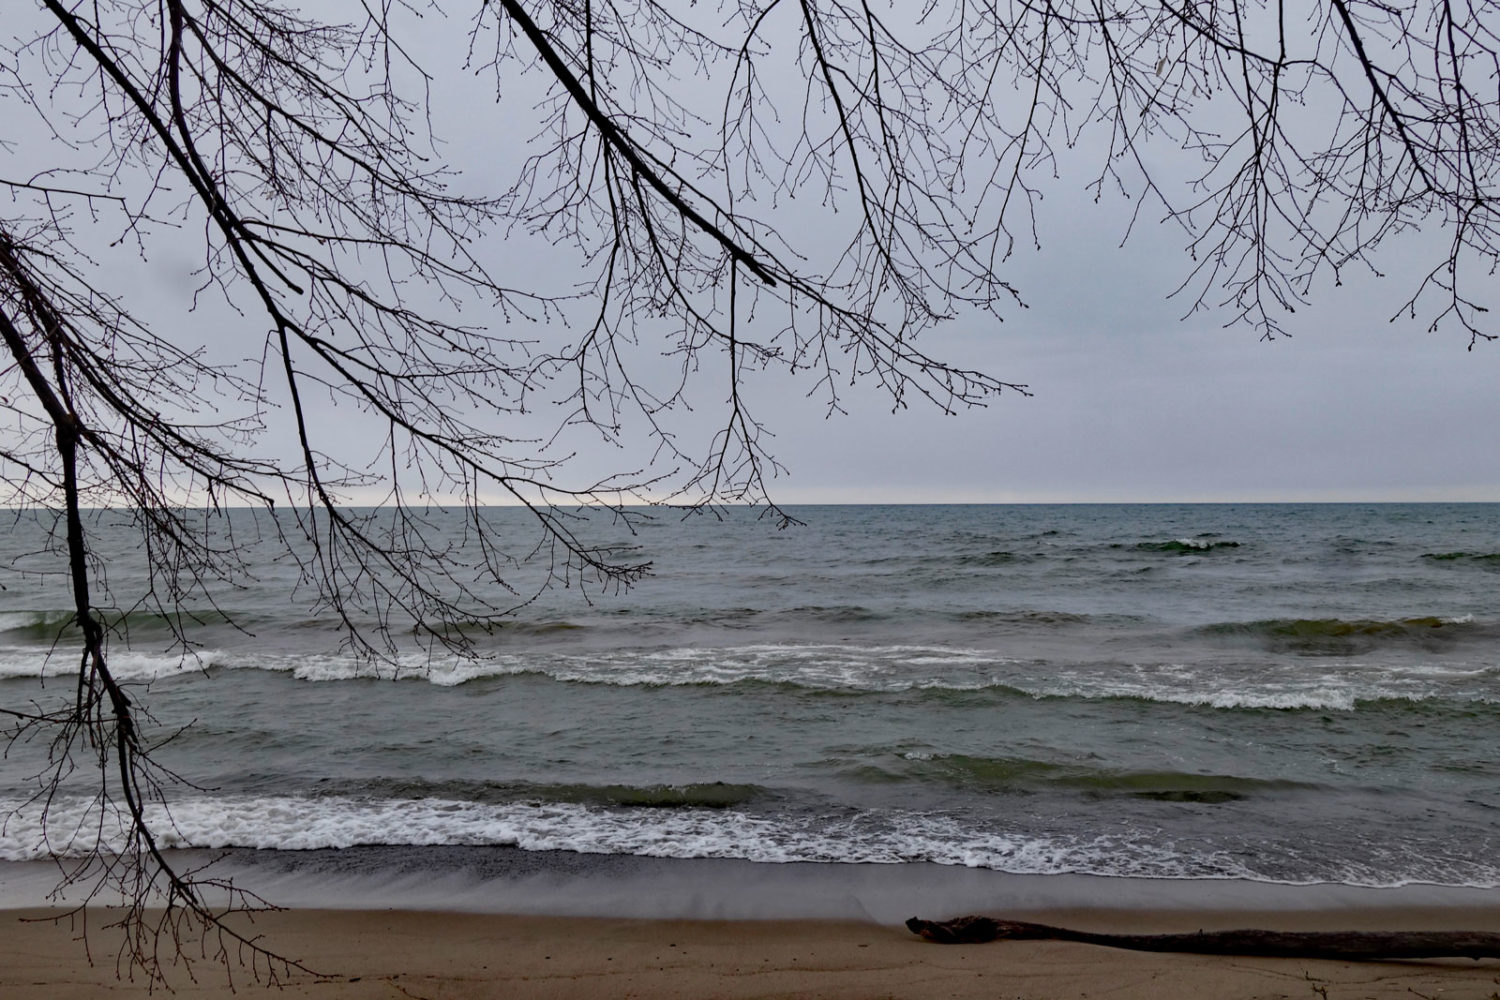 Gentle waves on Lake Ontario